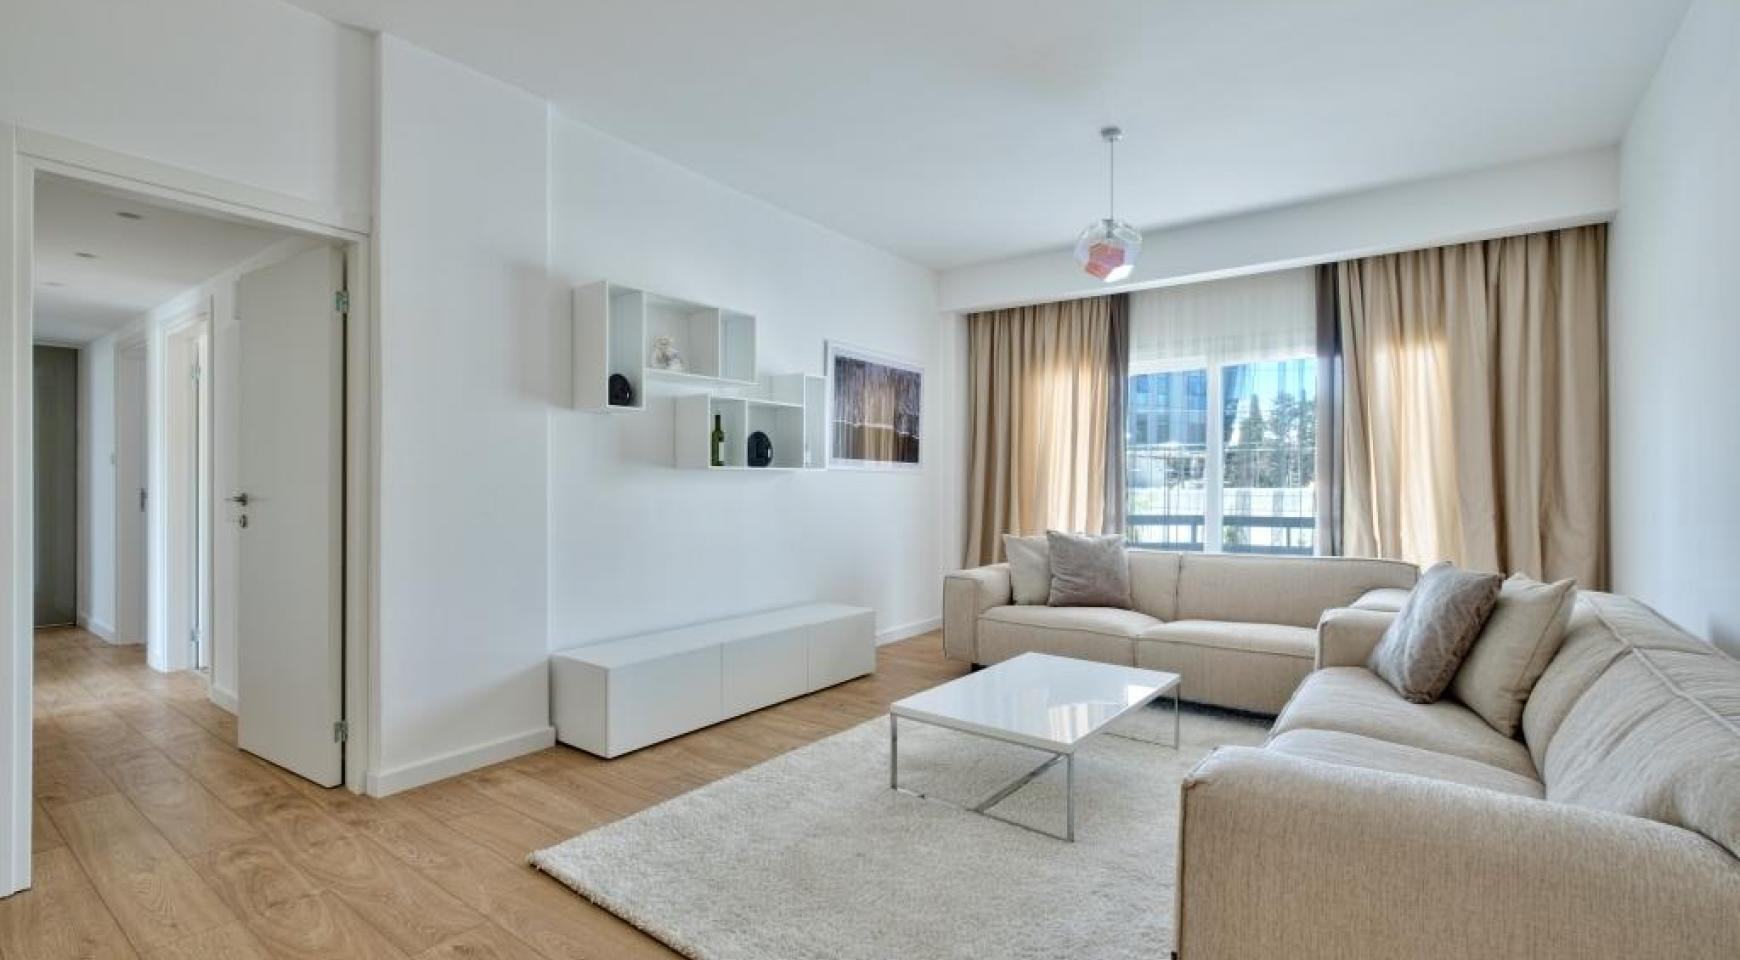 Modern 3 Bedroom Аpartment in Crown Plaza area - 15